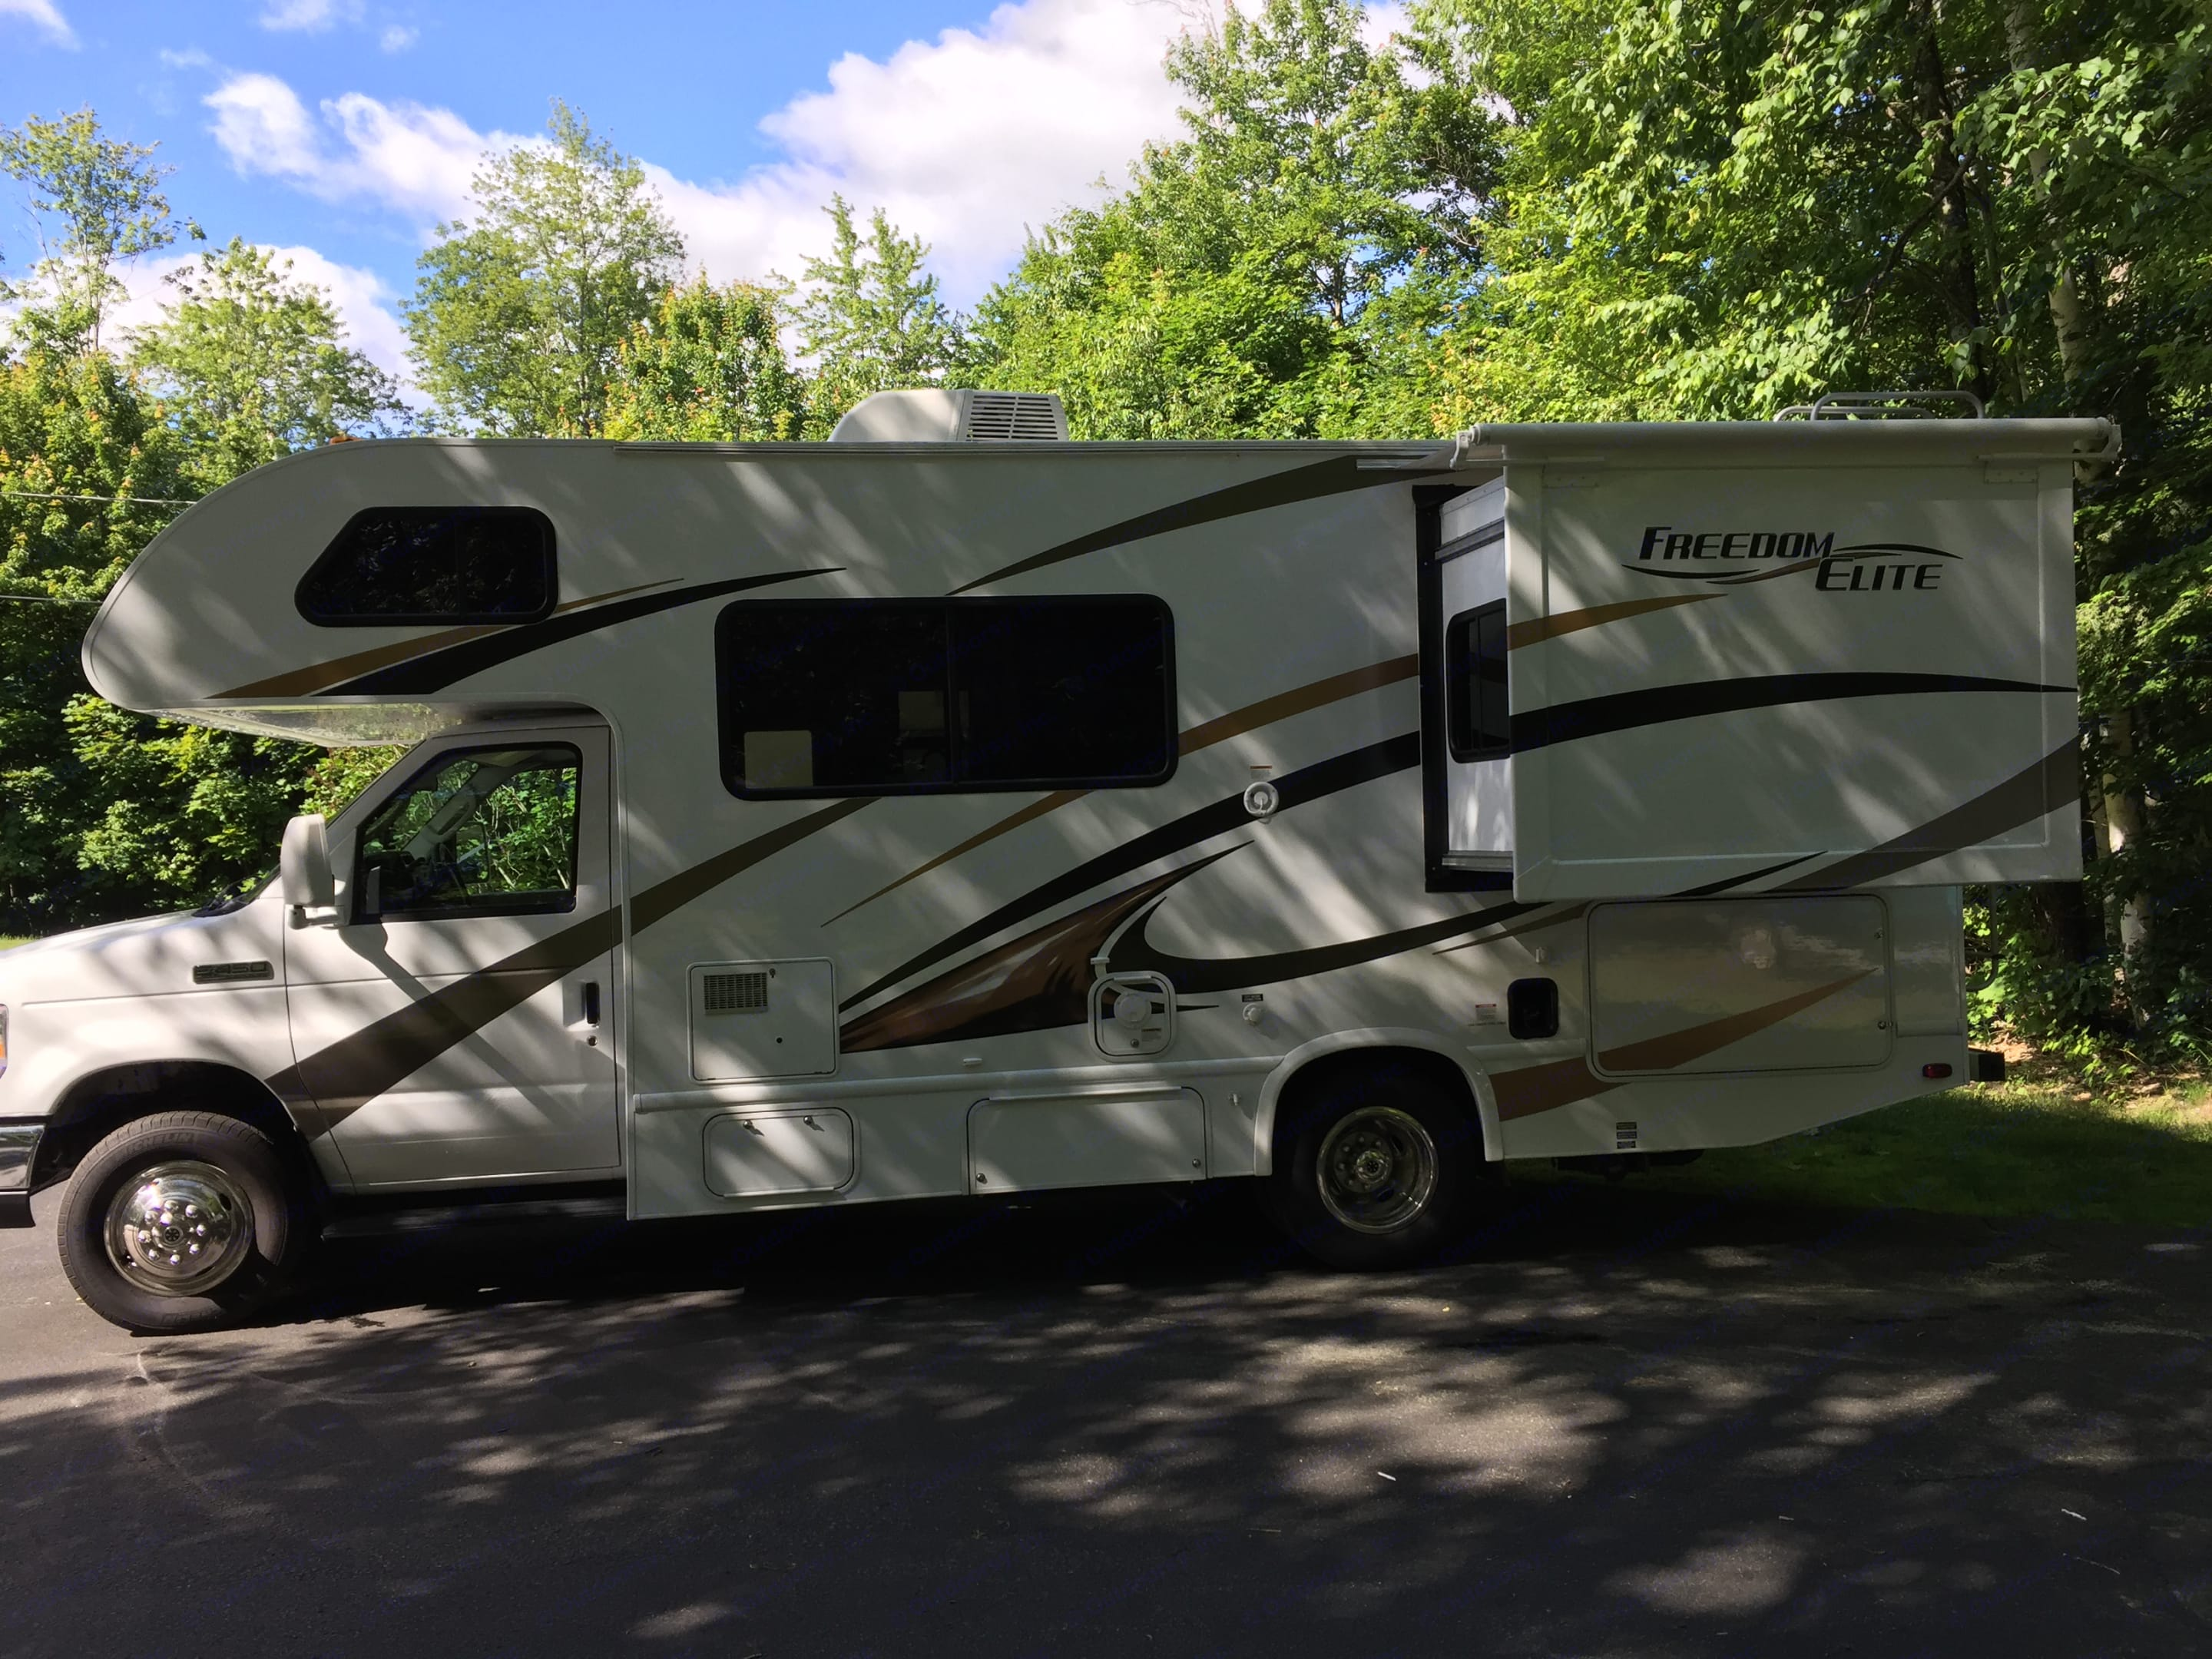 Plenty of room for your entertainment plus an elegant look with this Freedom Elite.. Thor Motor Coach Freedom Elite 2016